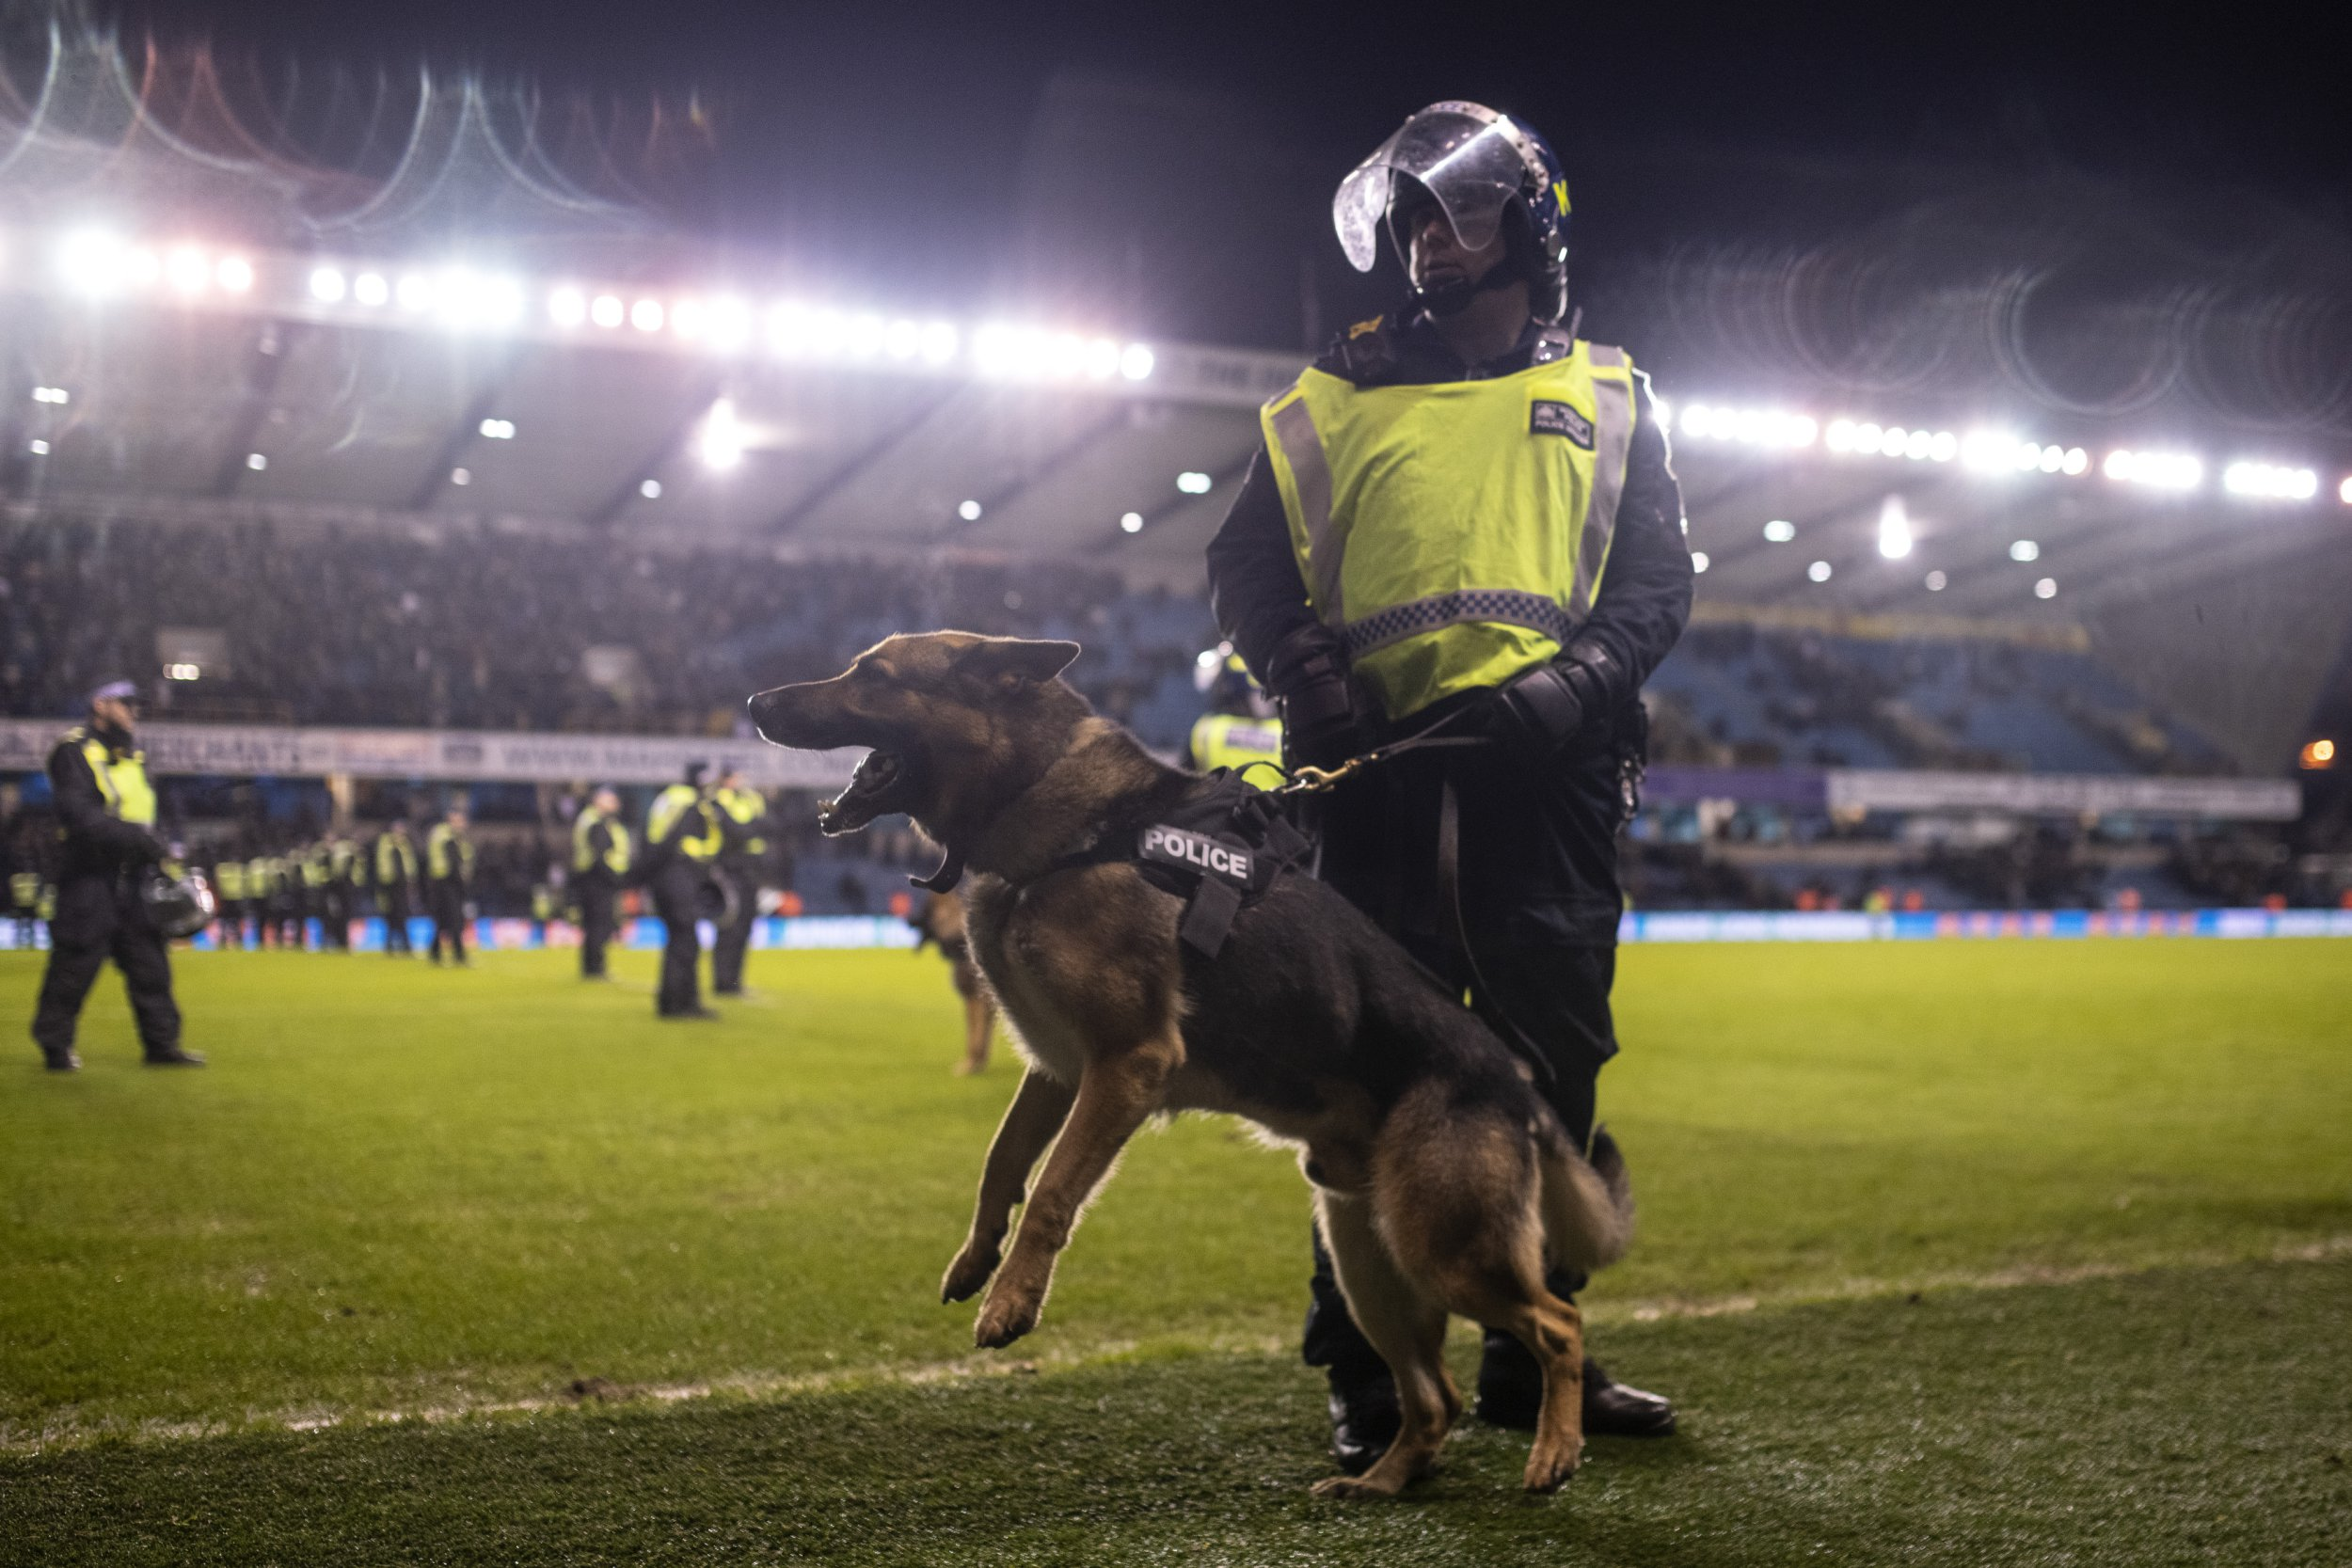 Millwall charged for alleged racist chanting LONDON, ENGLAND - JANUARY 26: A policeman and police dog are seen on the pitch after the FA Cup Fourth Round match between Millwall and Everton at The Den on January 26, 2019 in London, United Kingdom. (Photo by Justin Setterfield/Getty Images)